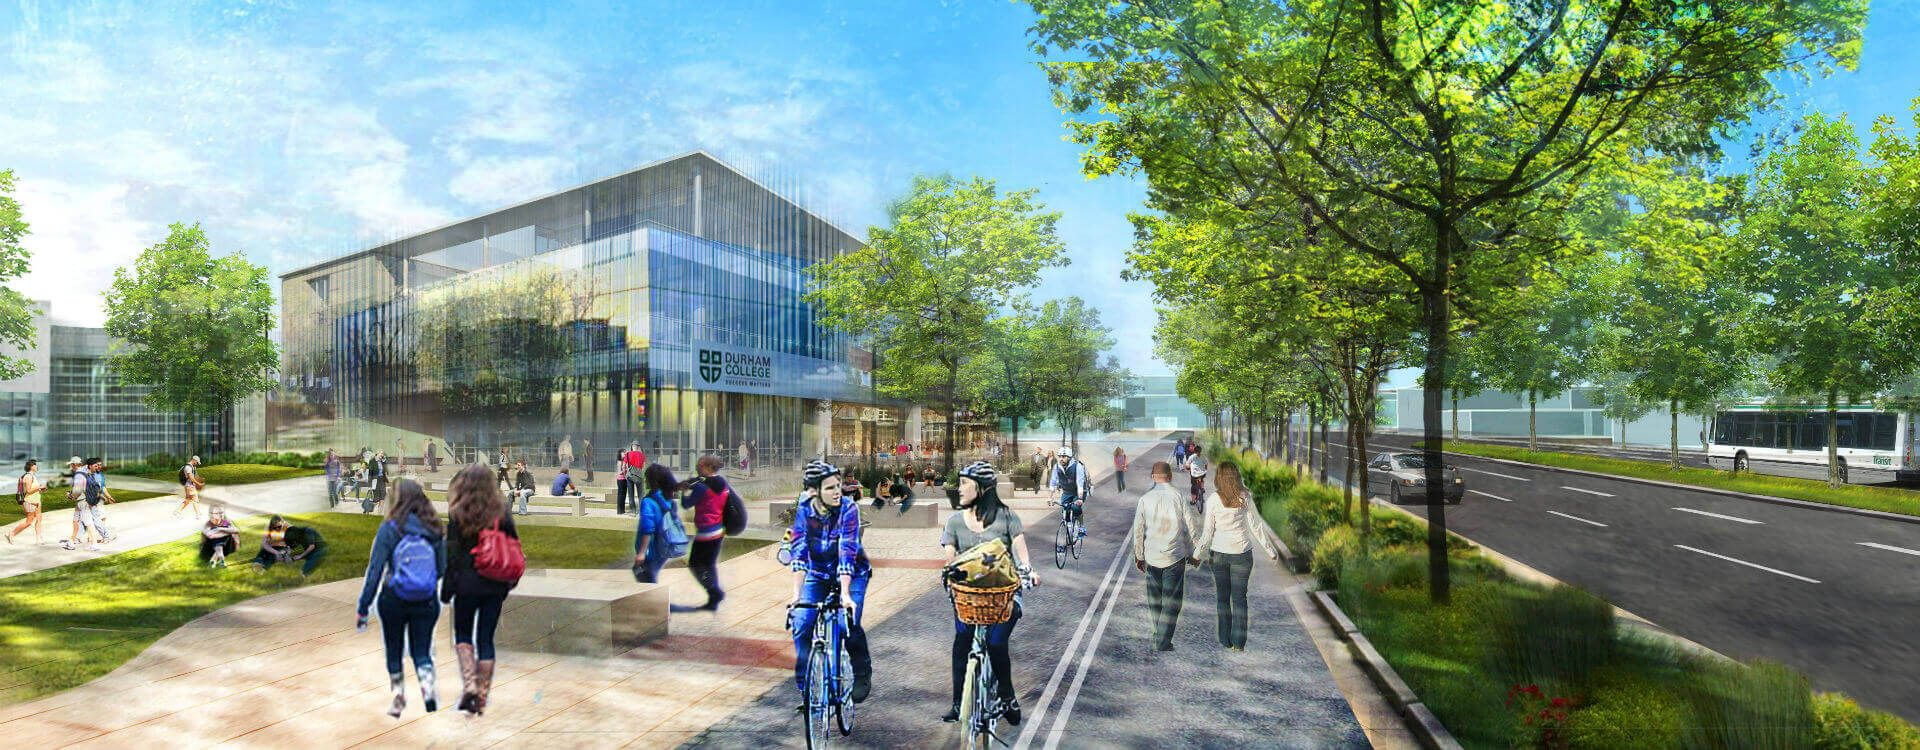 University of ontario institute of technology and durham college joint campus master plan wsp - Durham college international office ...